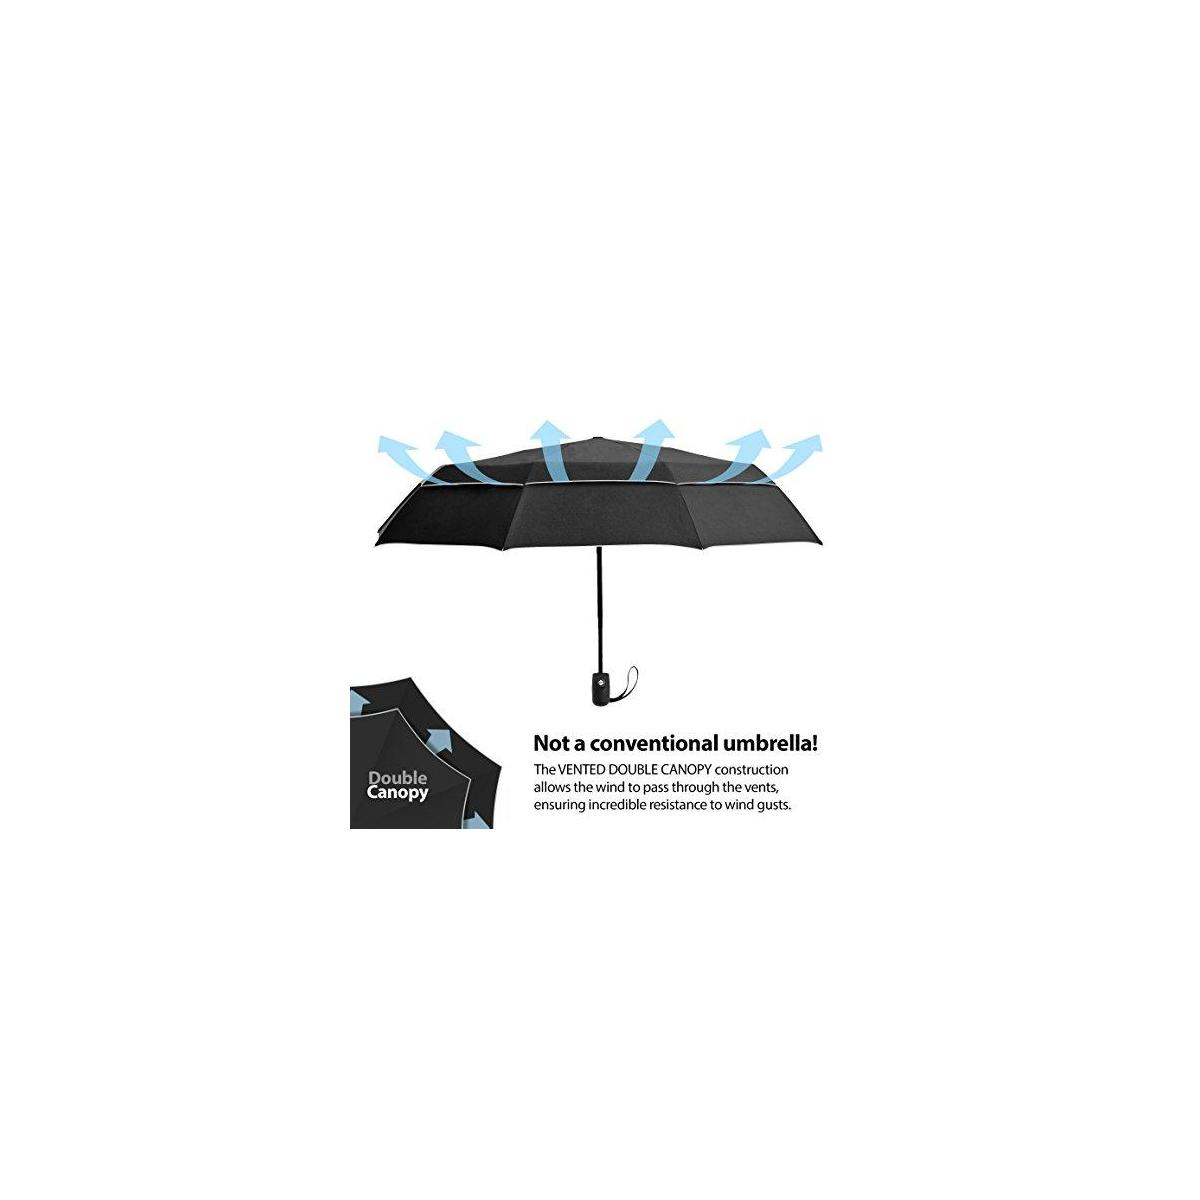 Compact Travel Umbrella Walmart Eez Y Compact Travel Umbrella W Uv Protection Upf 50 Sun